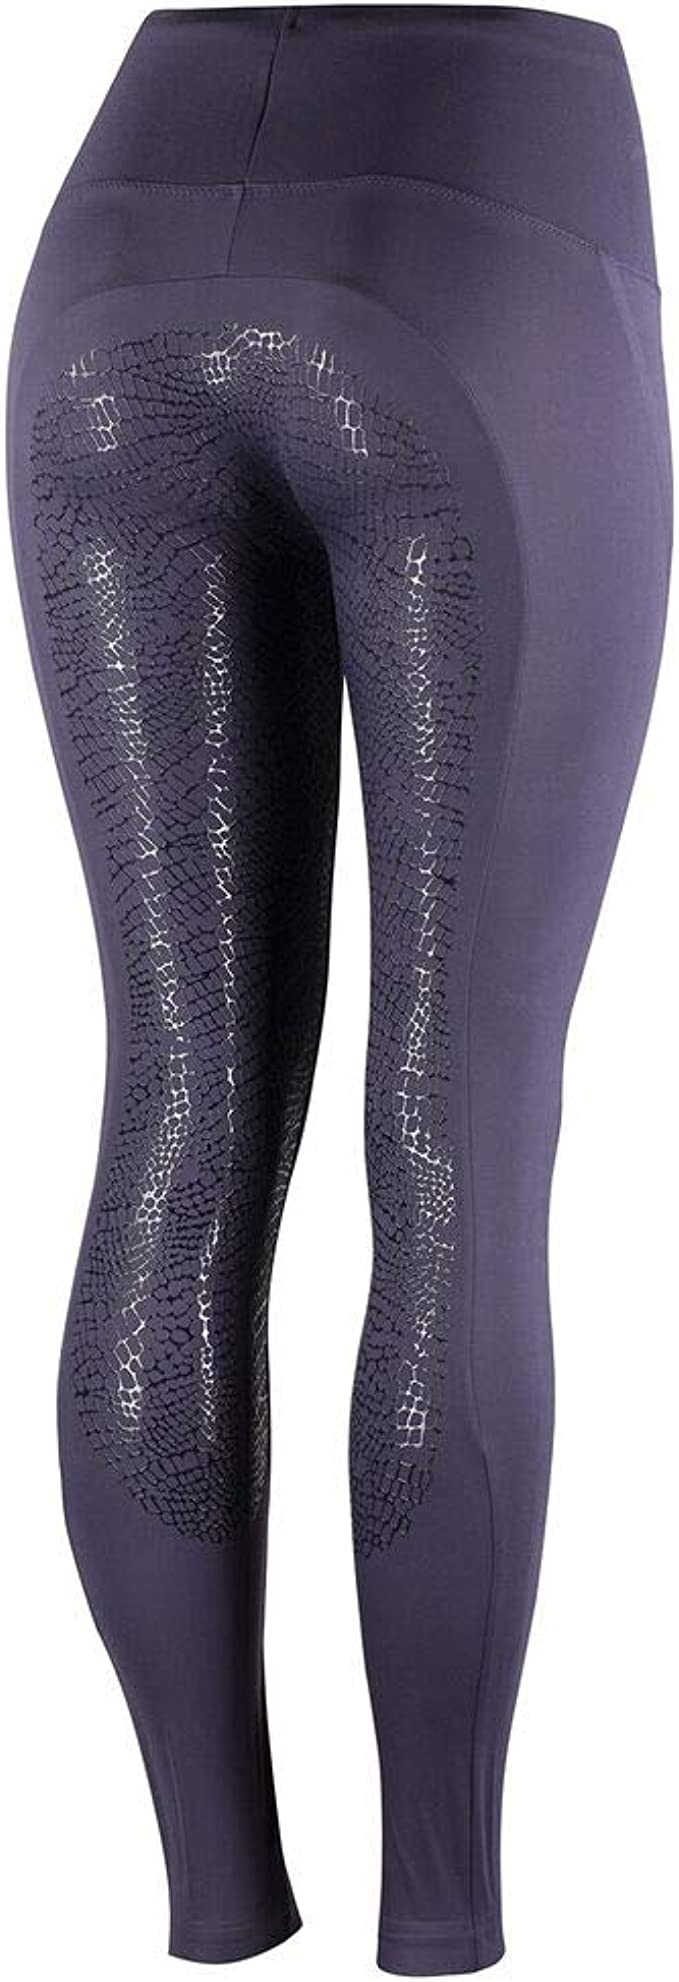 Horze Bianca Womens Silicone FS Tights,